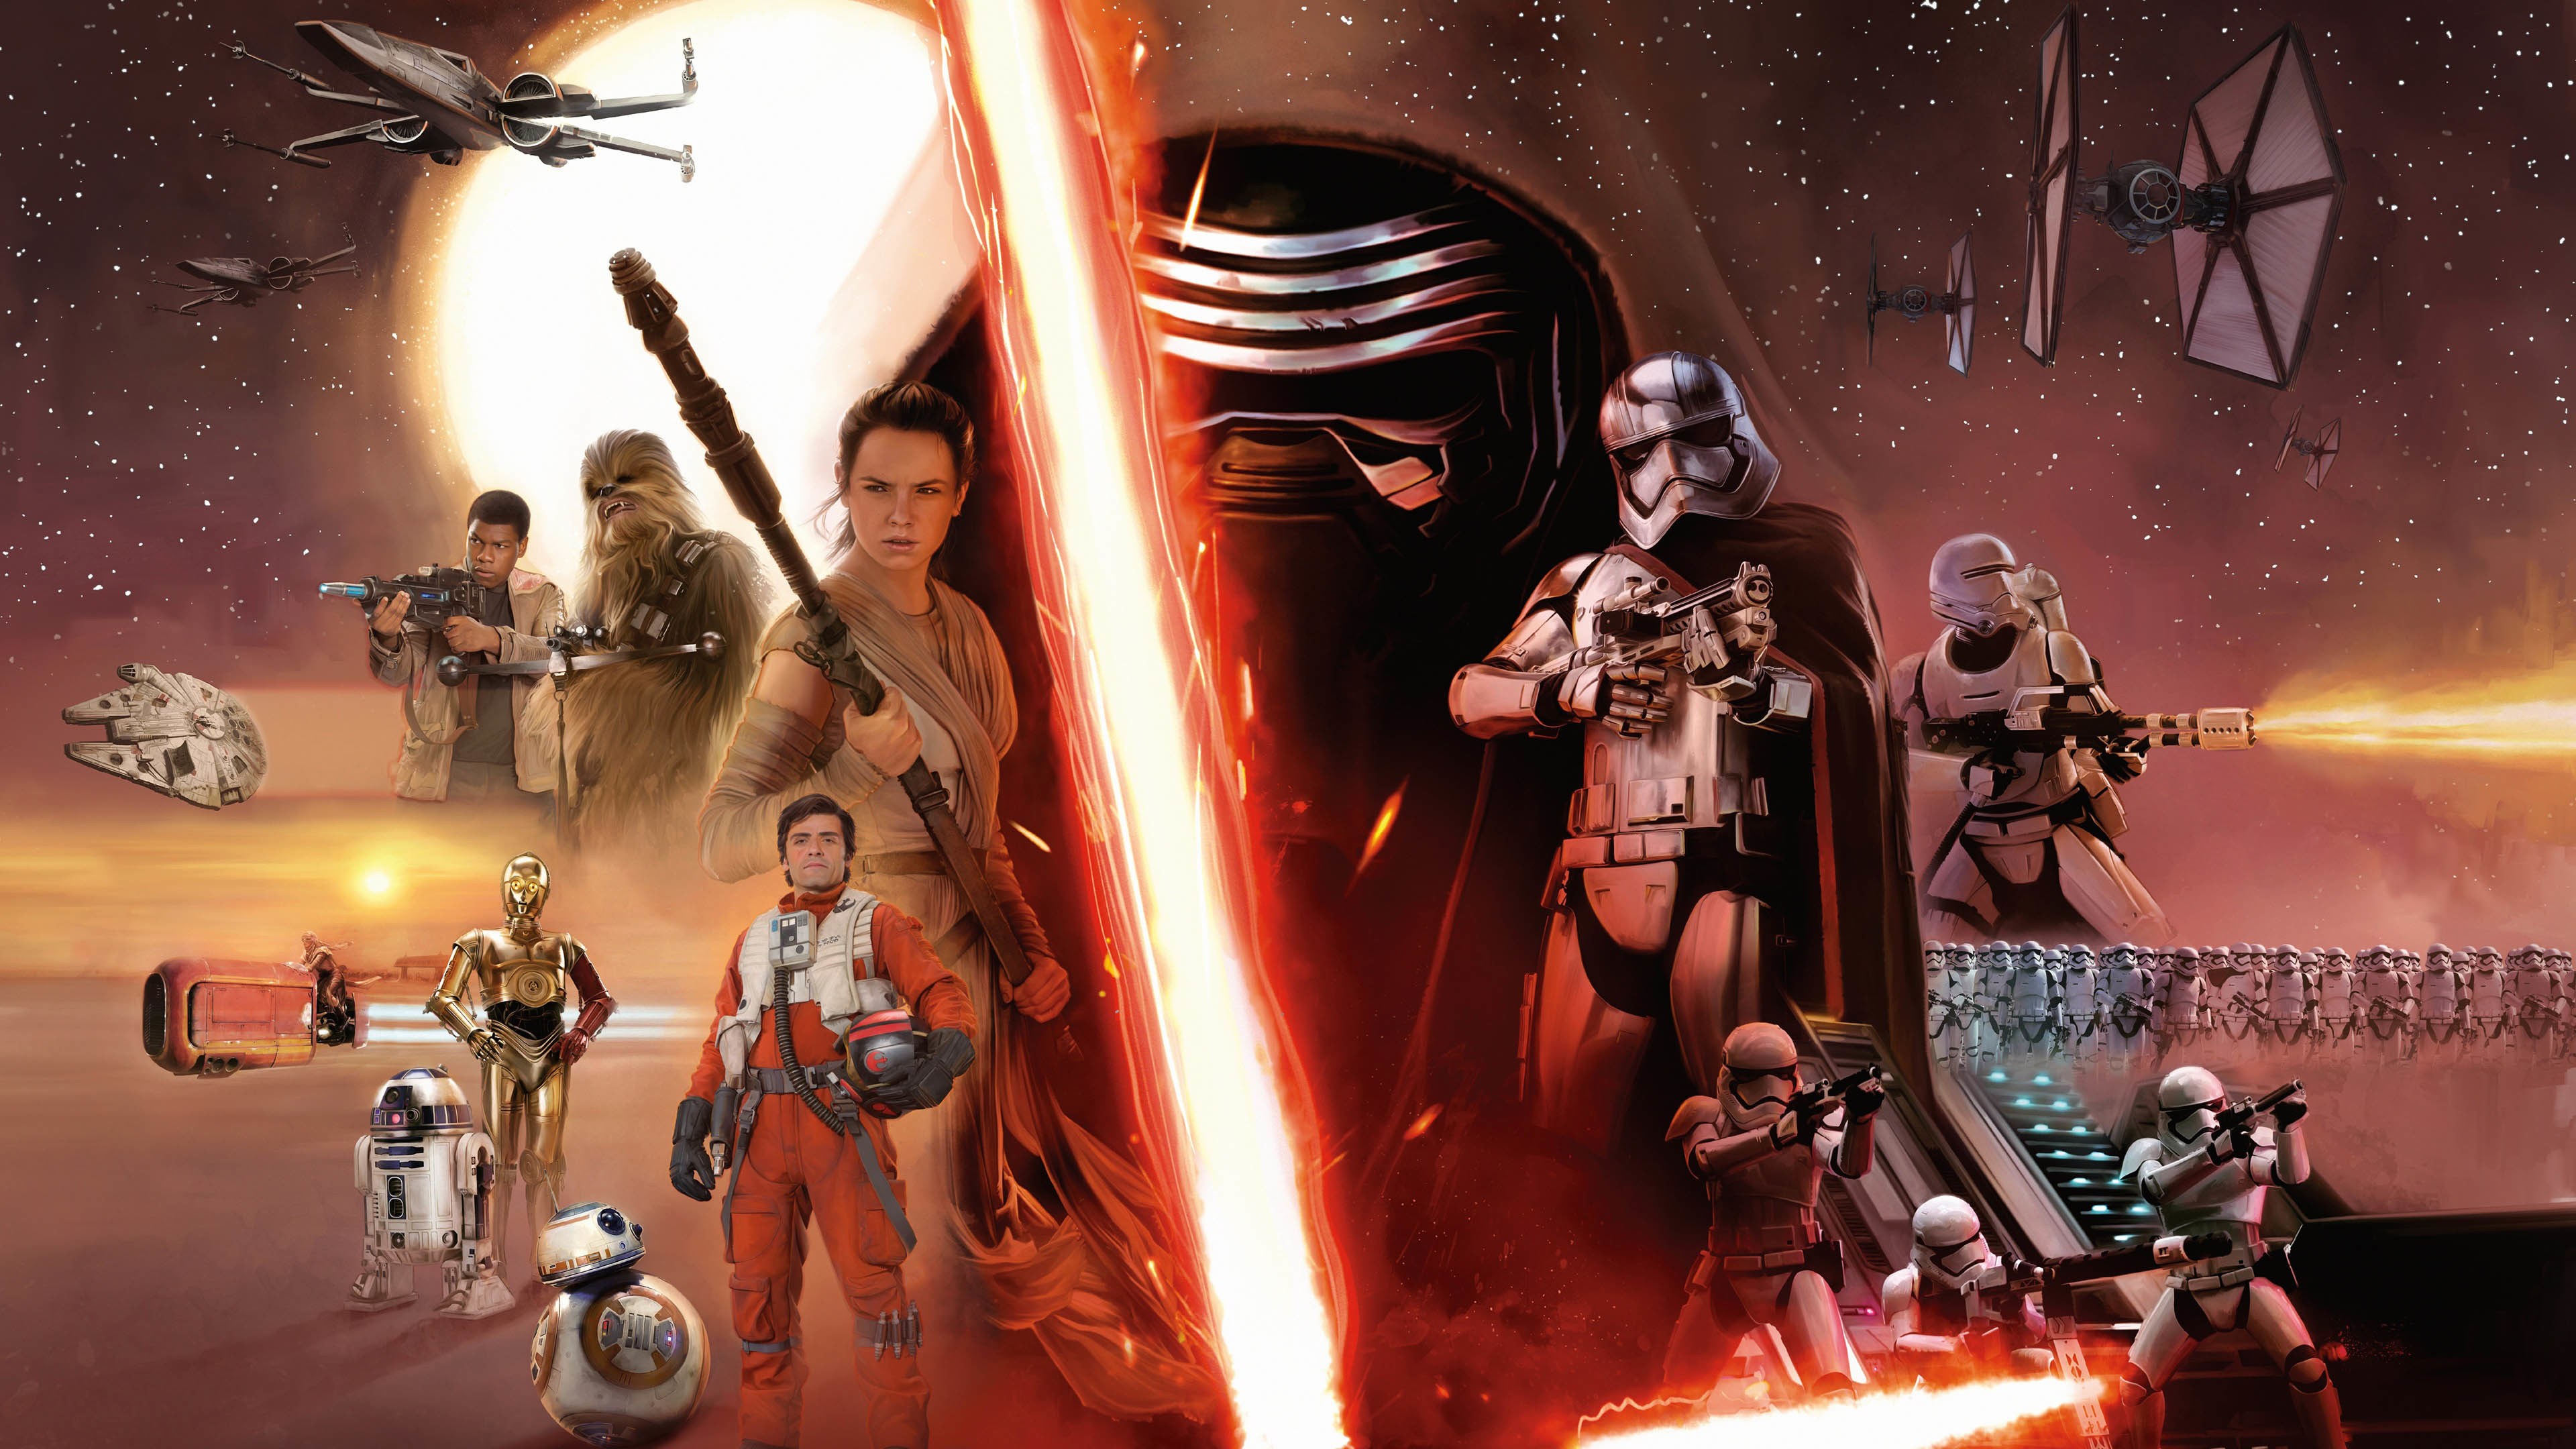 Star Wars, Episode 7: The Force Awakens Characters wallpaper